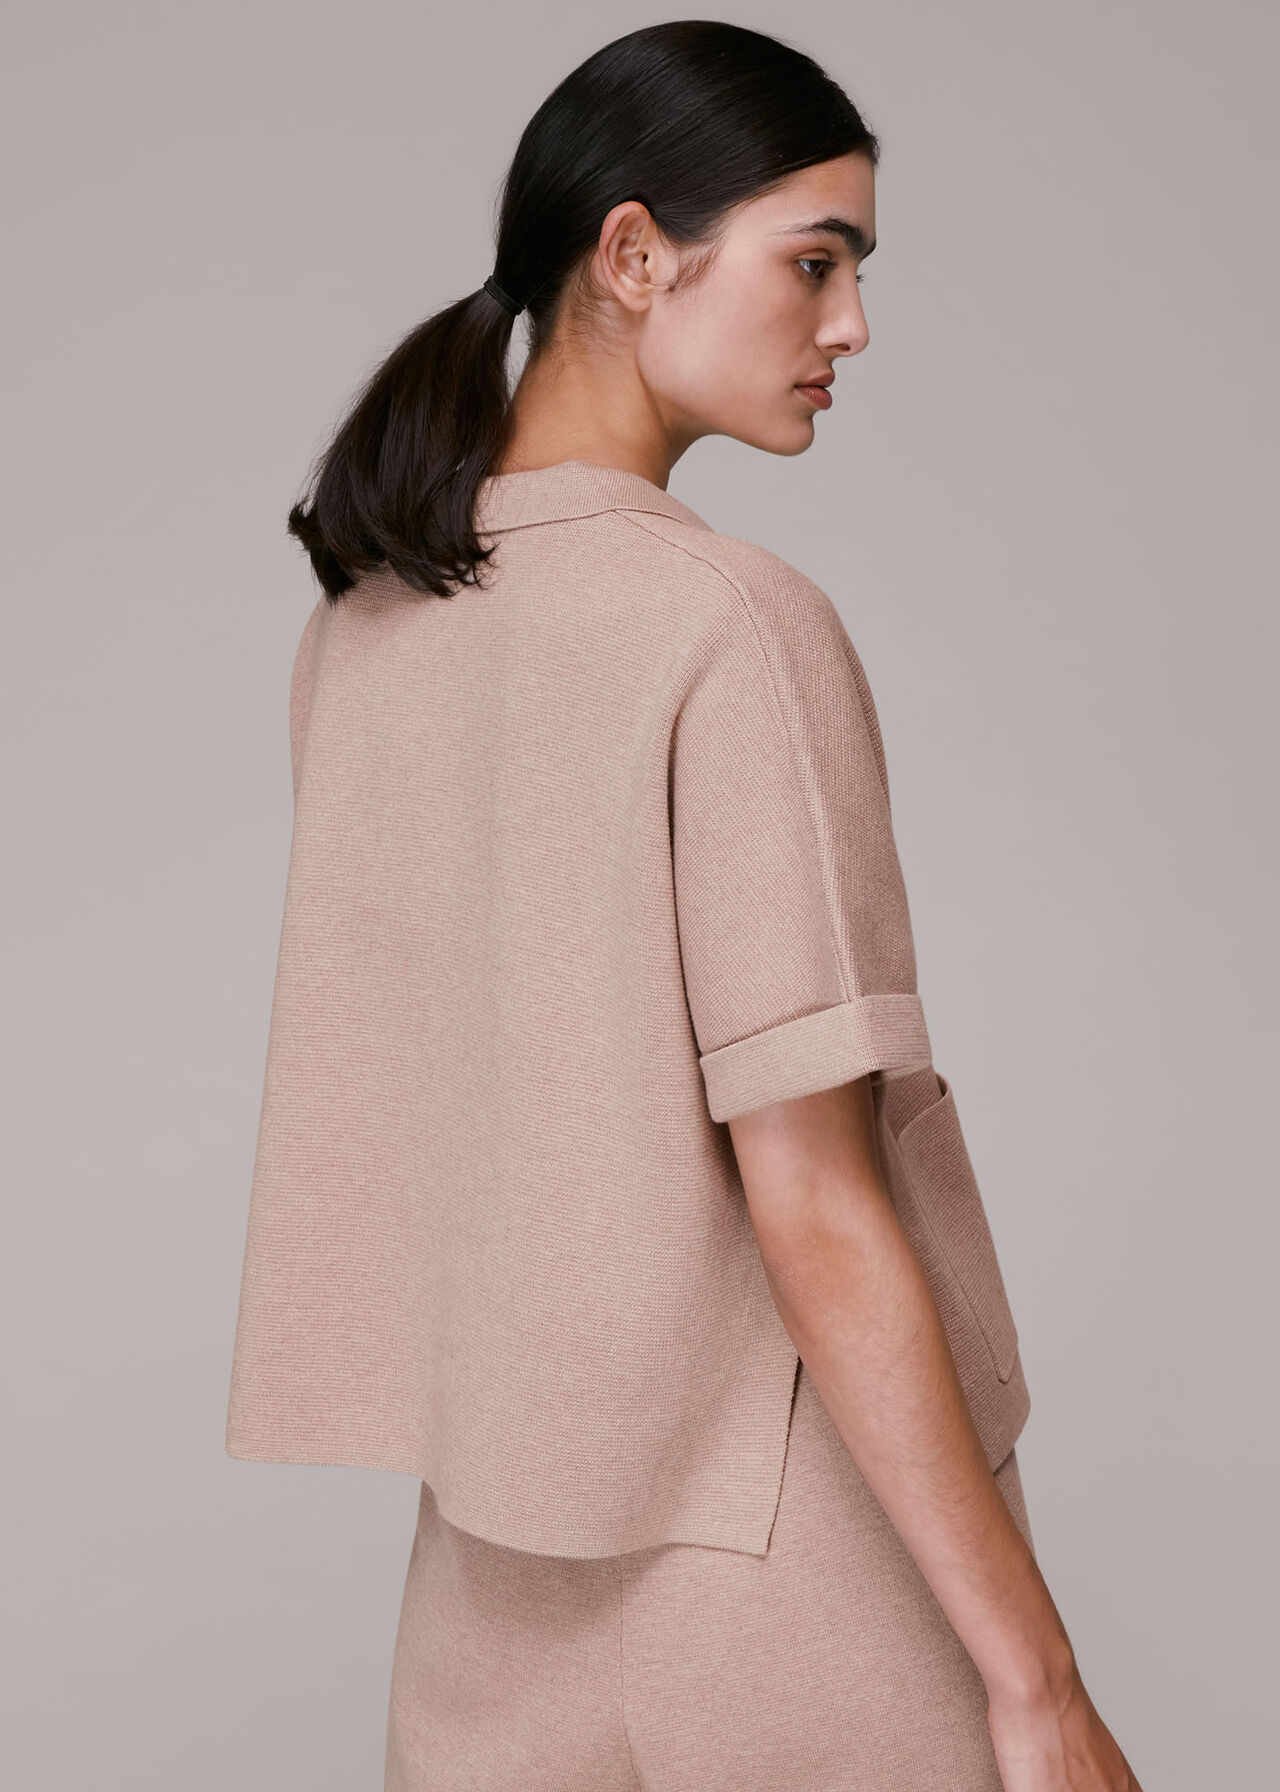 Boxy Knitted Top